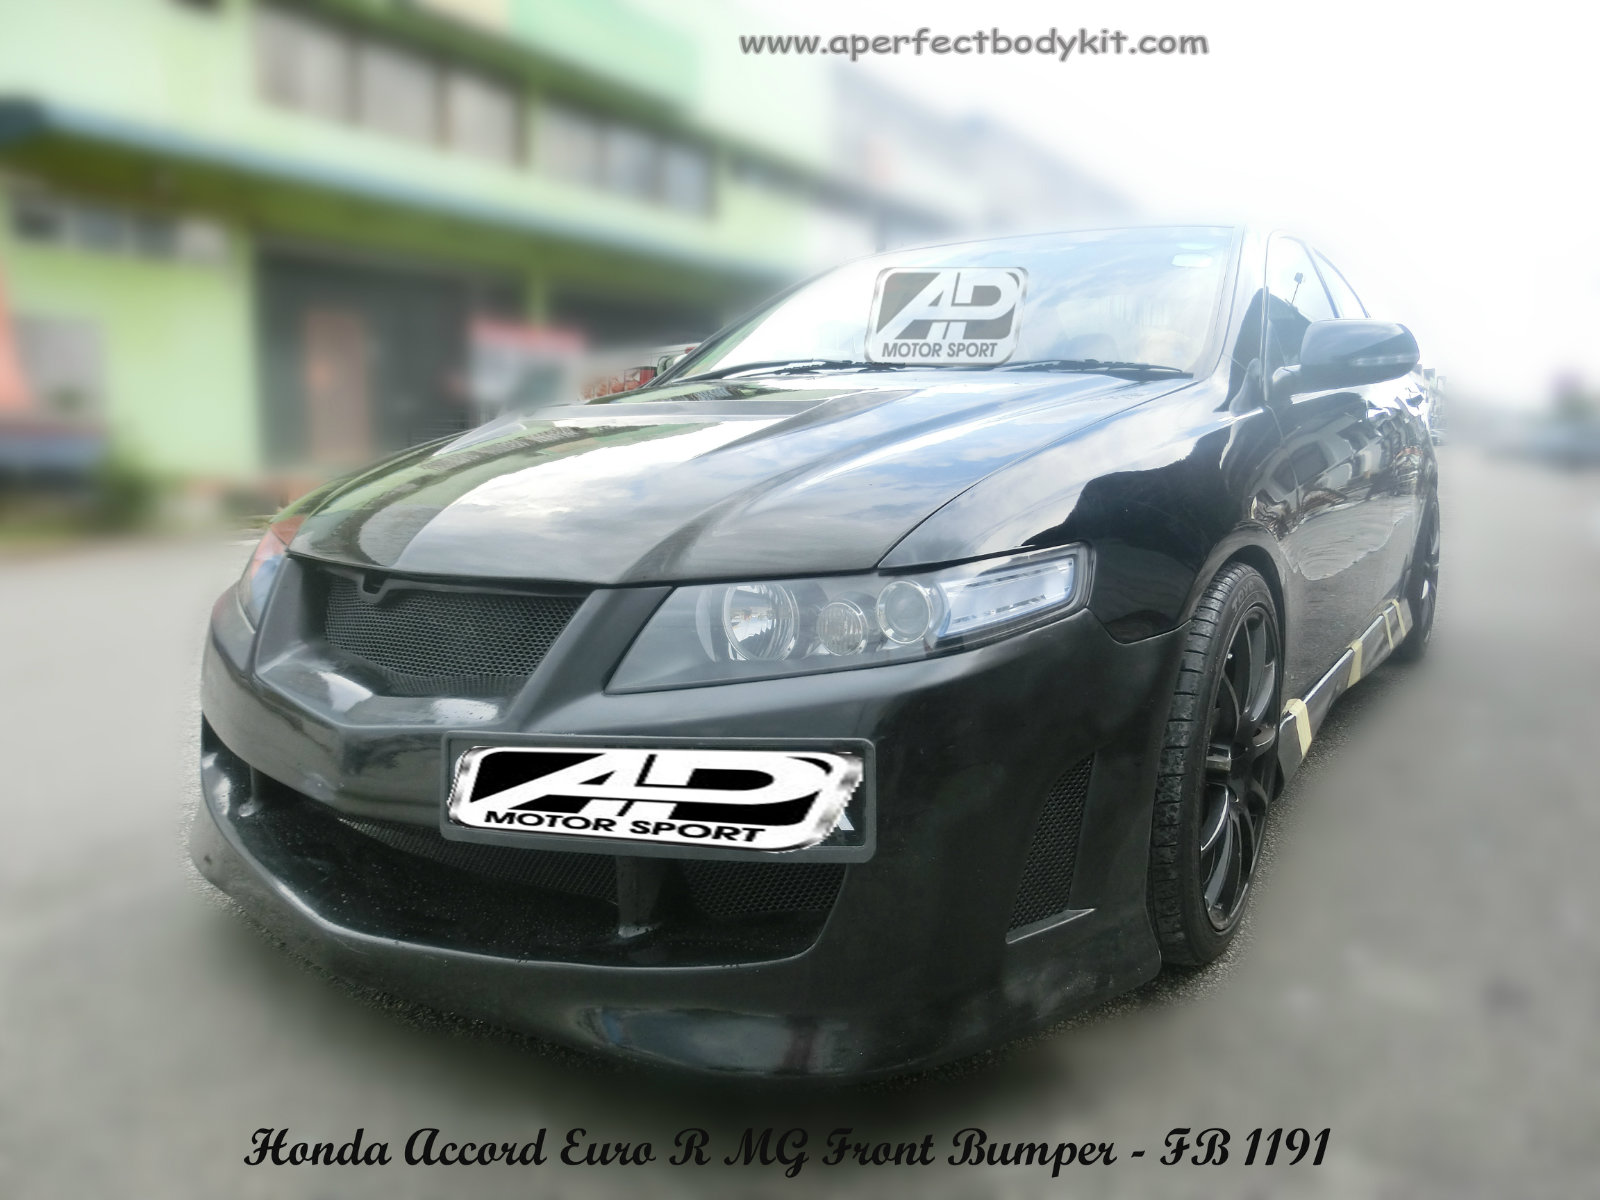 Honda Accord Euro R MG Front Bumper